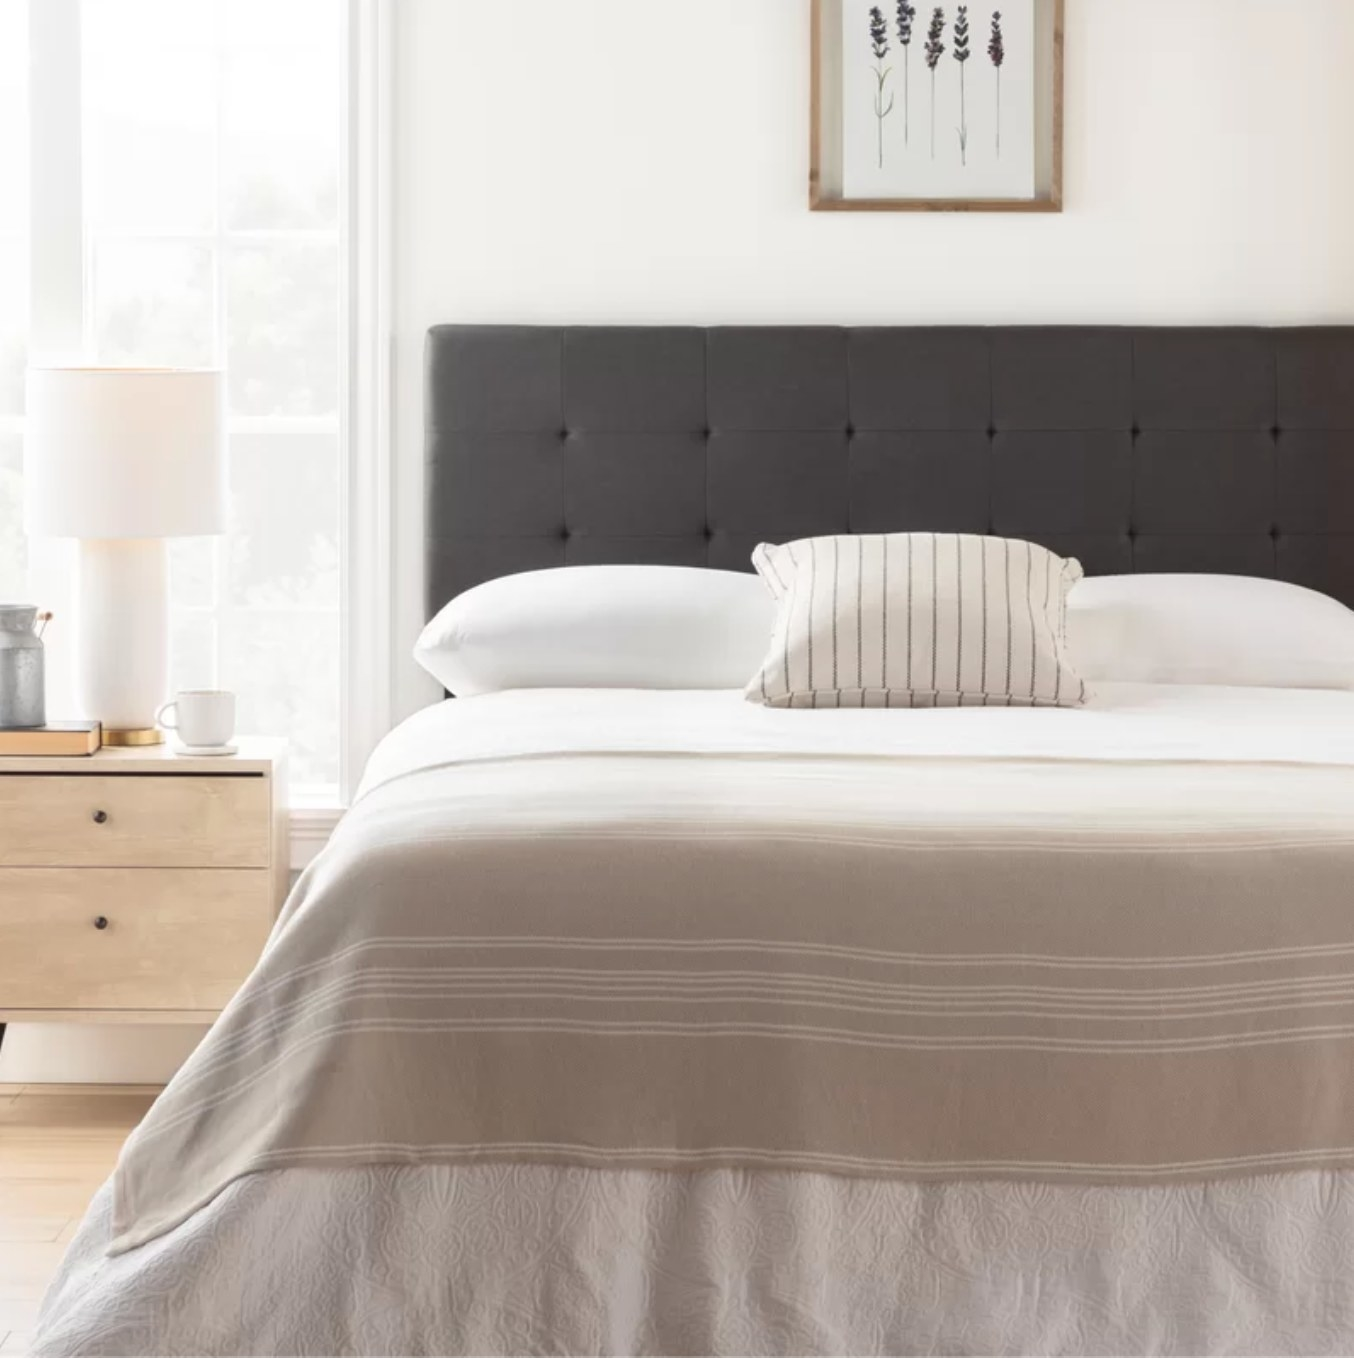 The upholstered headboard in gray